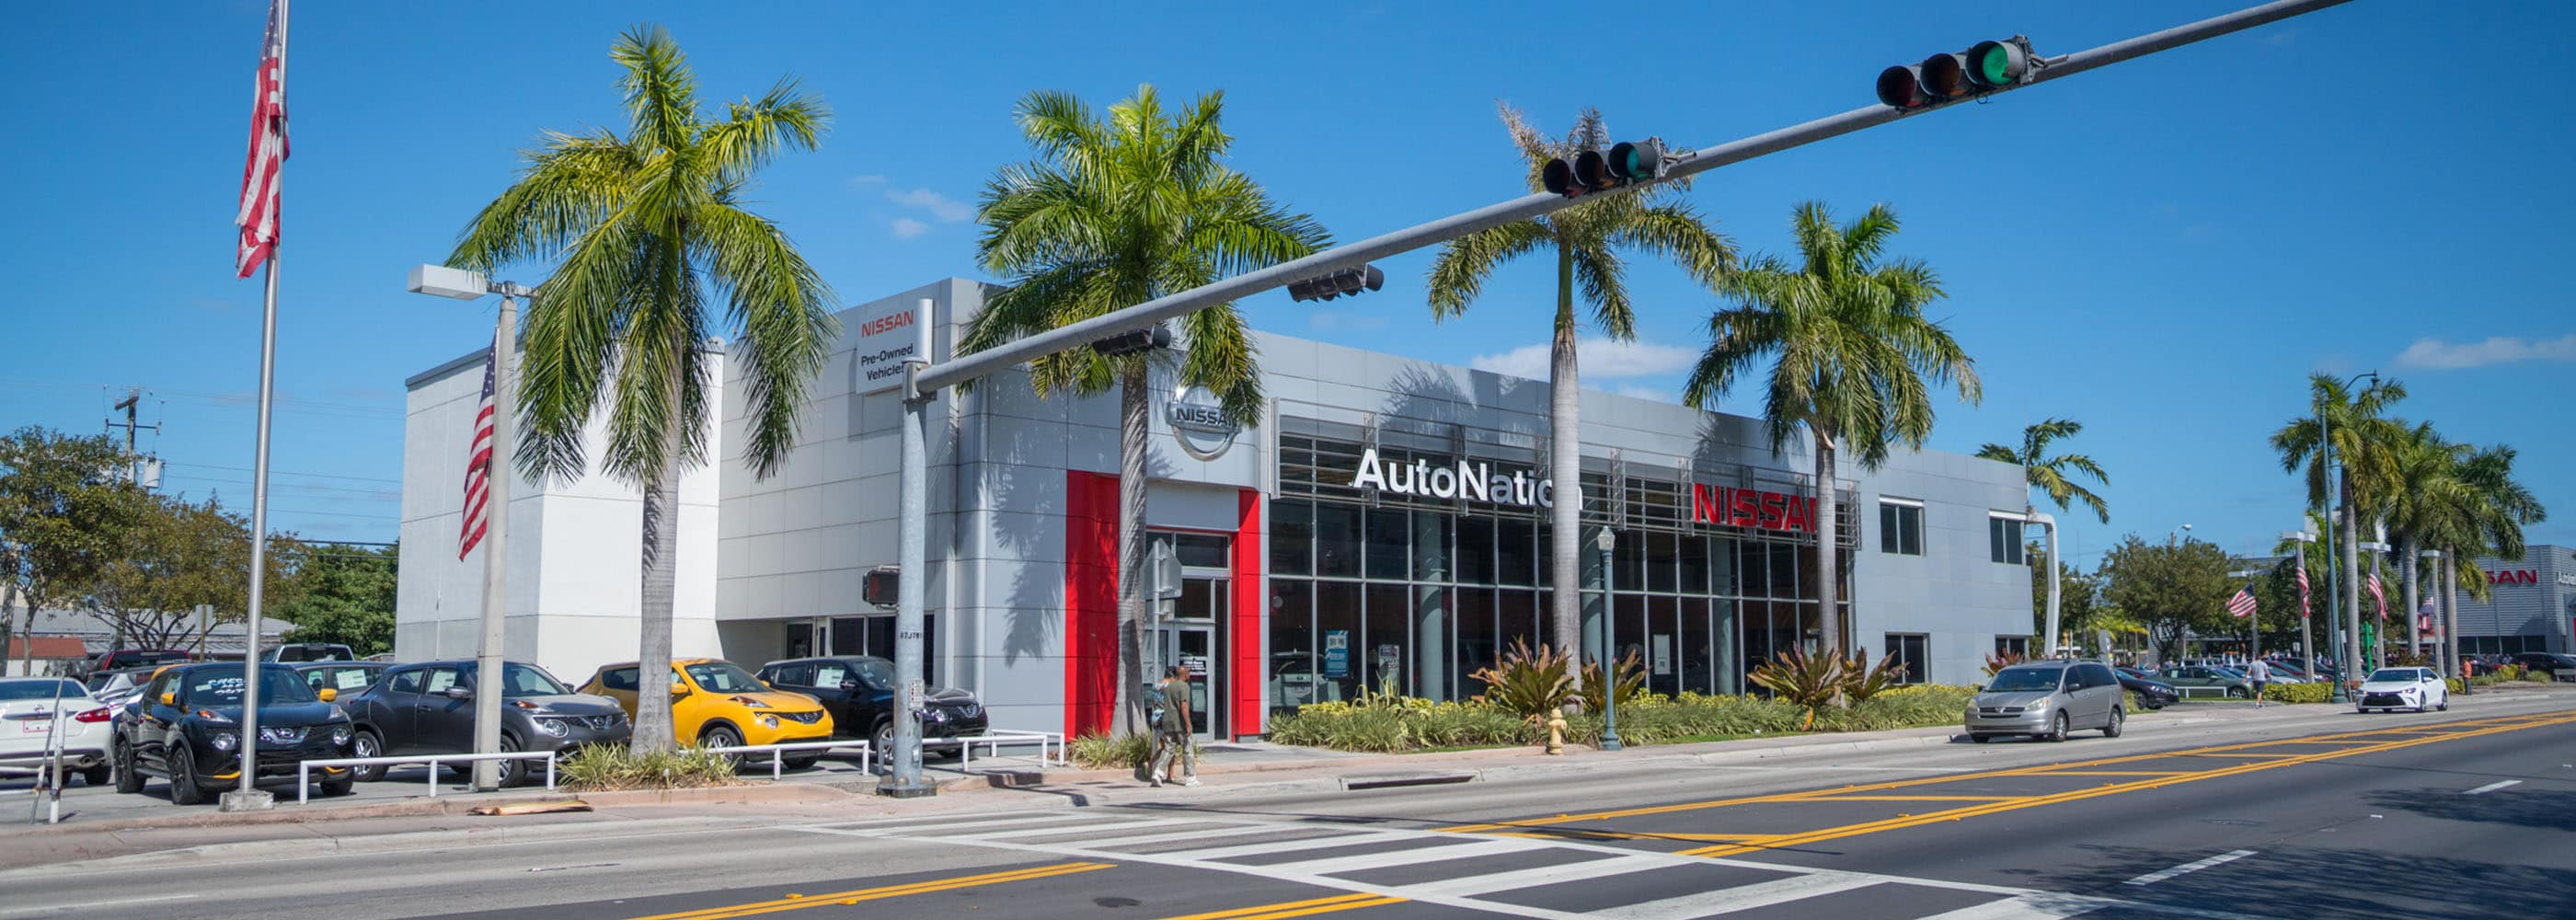 AutoNation Nissan Miami